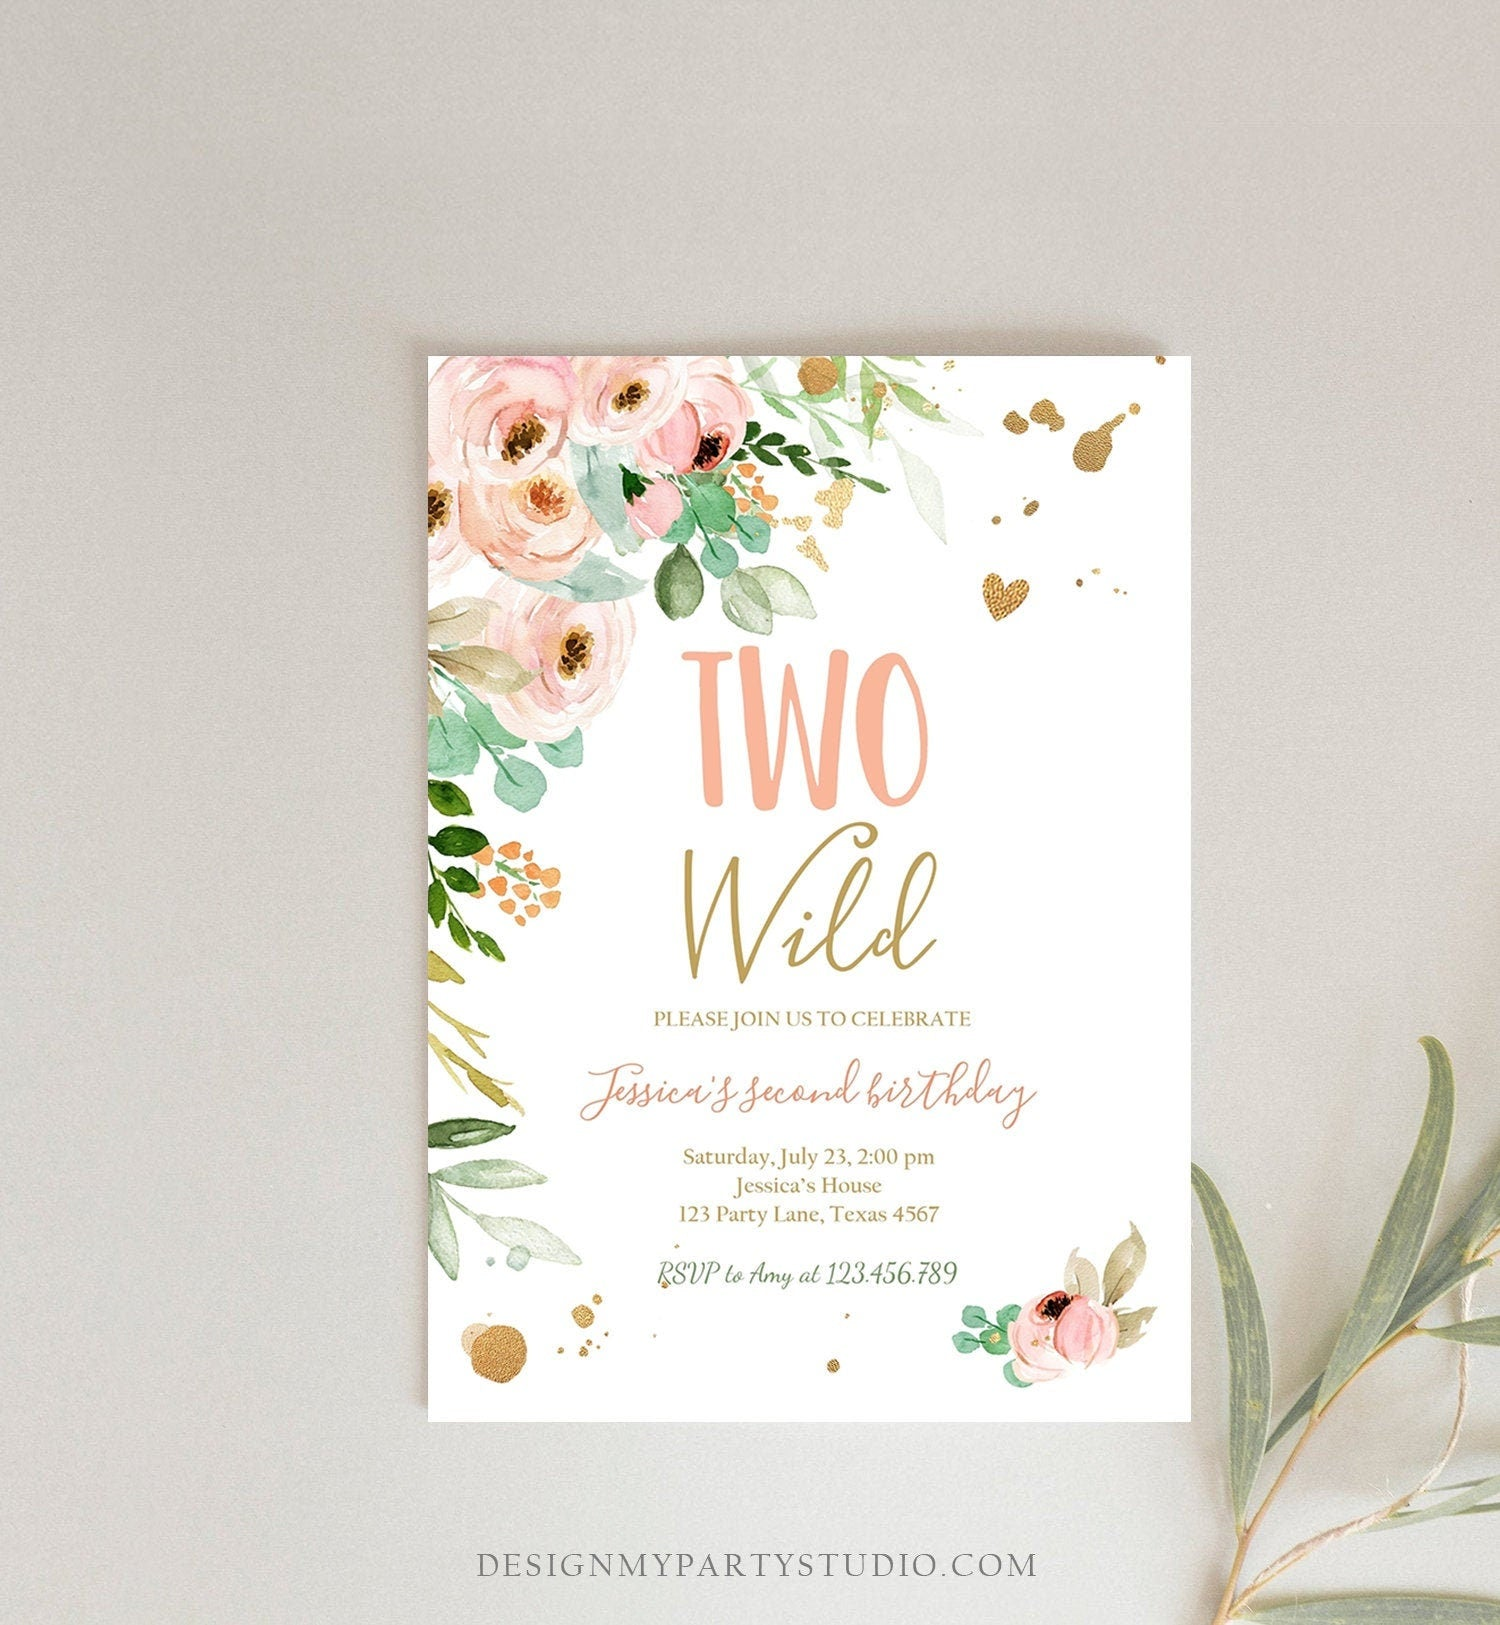 Editable Two Wild Birthday Invitation 2nd Birthday Girl Pink Gold Floral Second Birthday Wild Download Printable Template Corjl Digital 0147